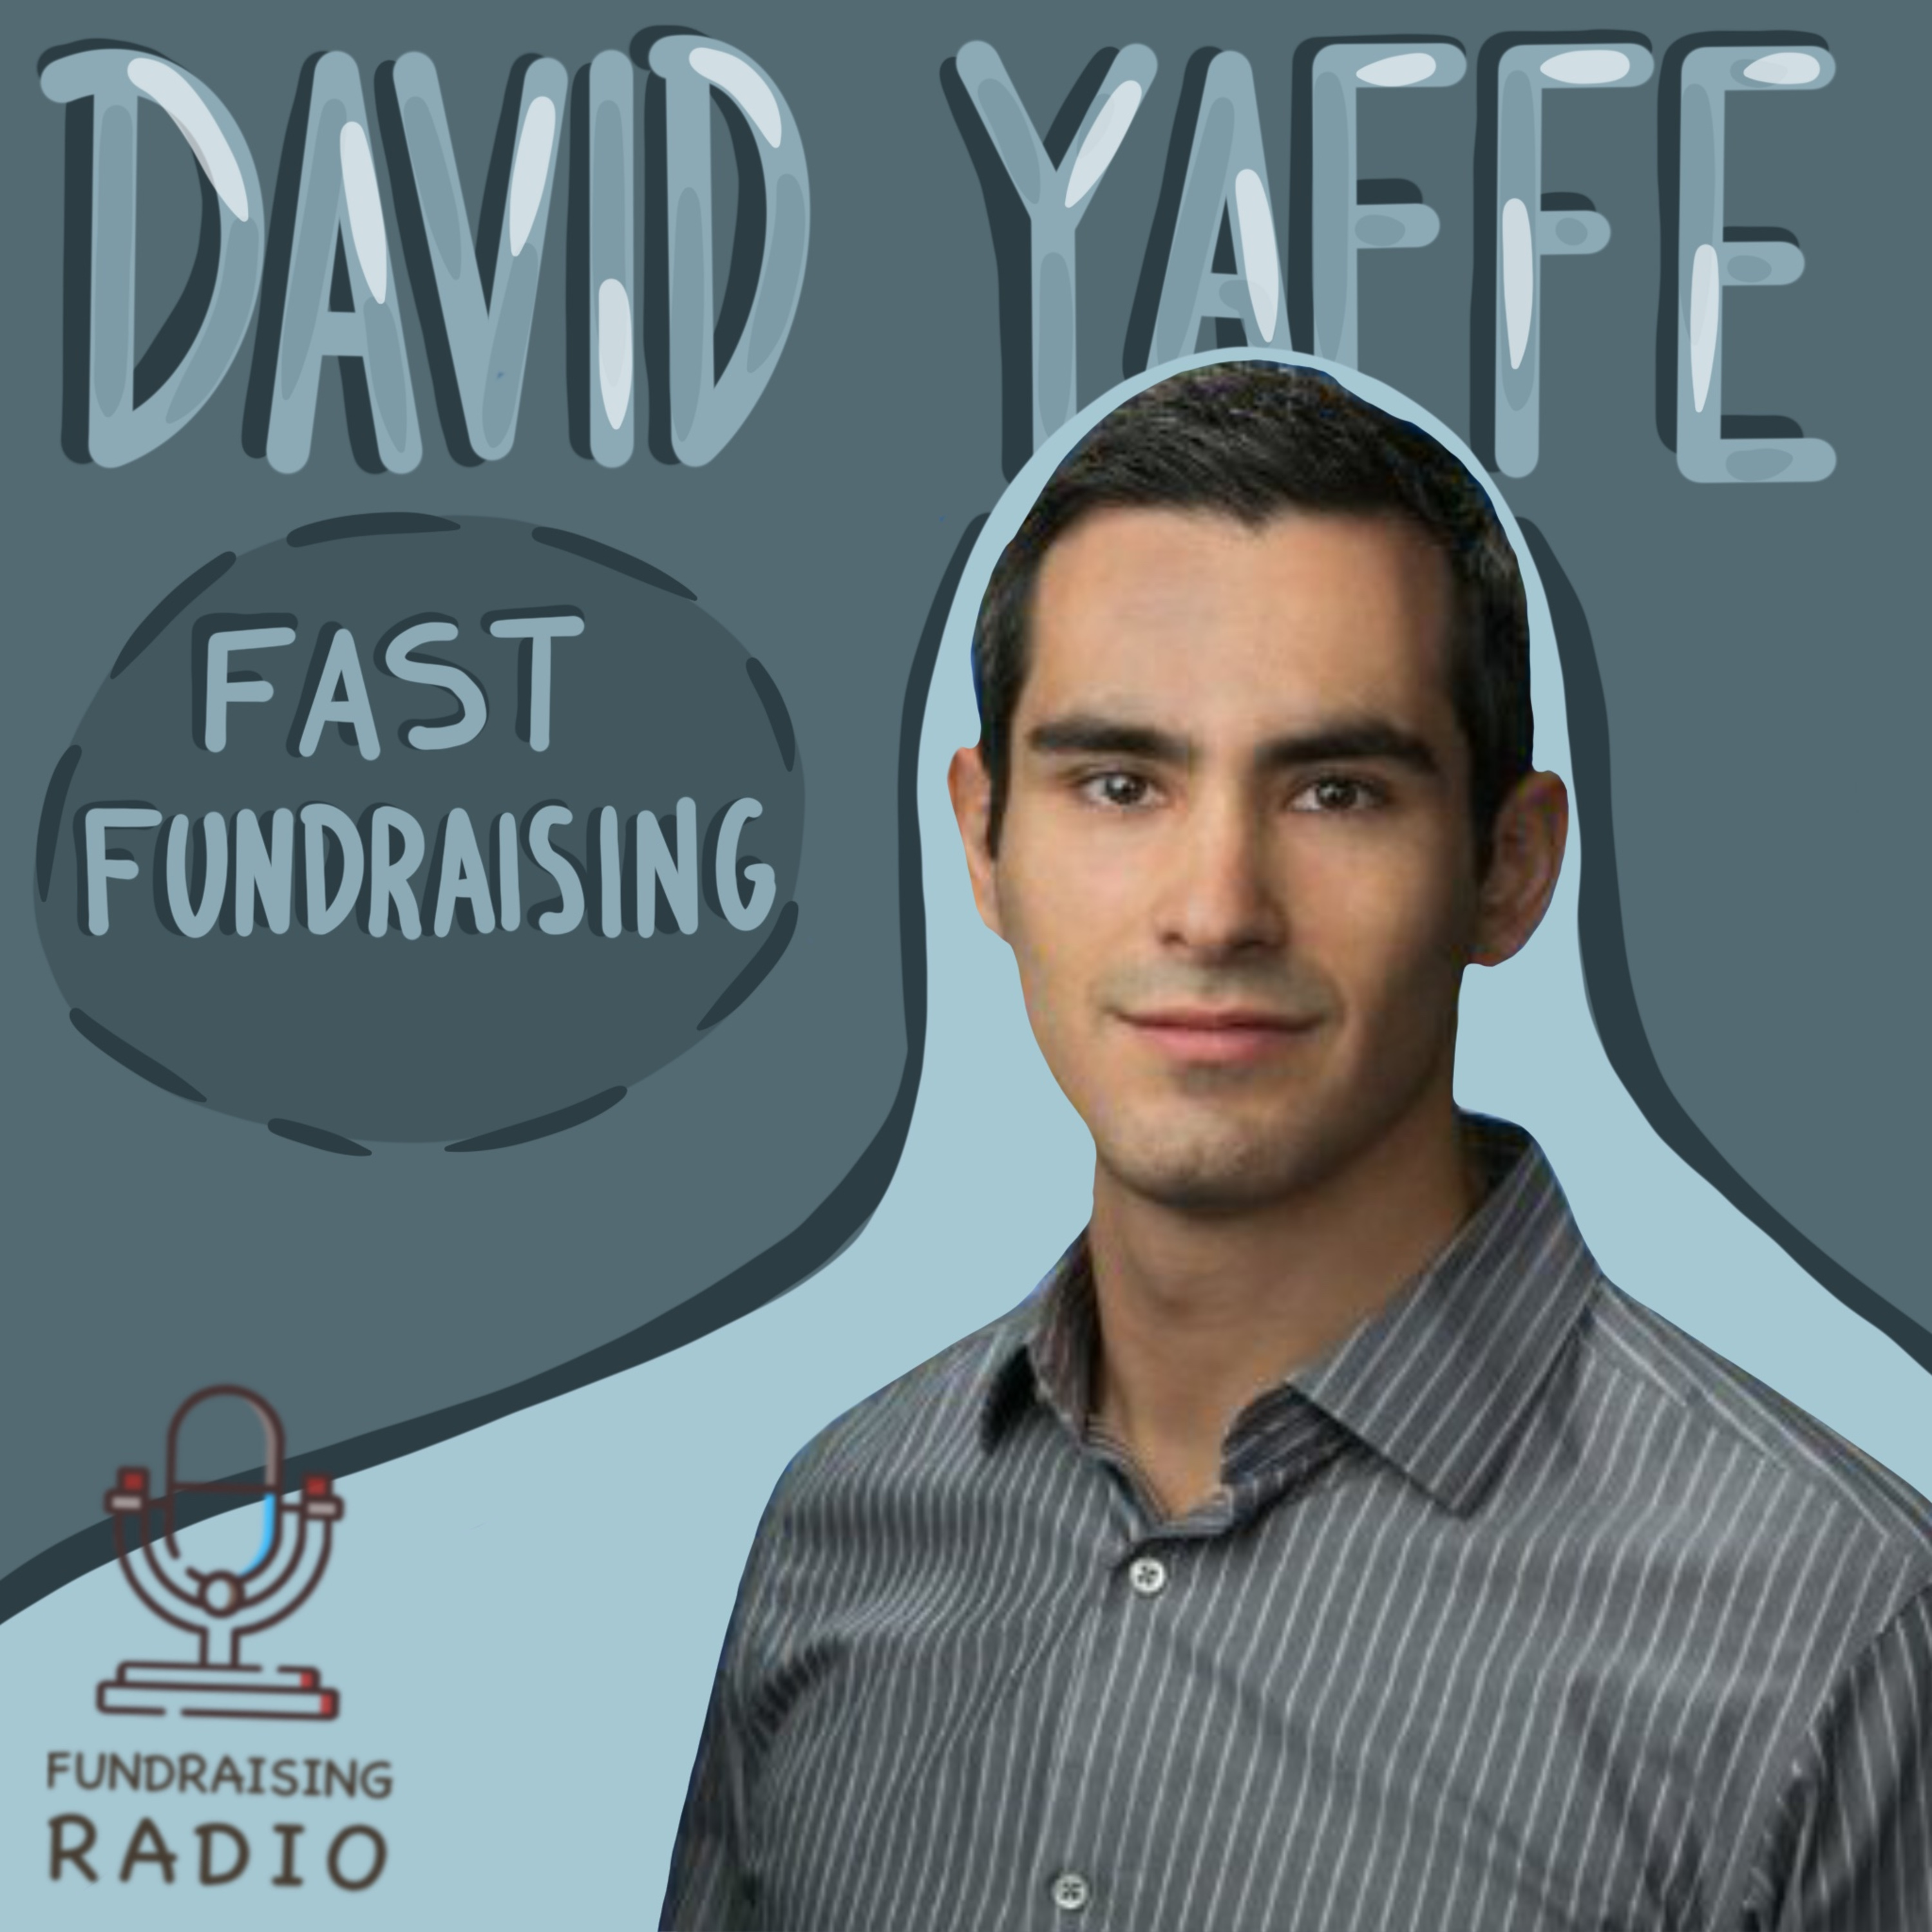 2 weeks for fundraising - how to raise a fast round, by David Yaffe.